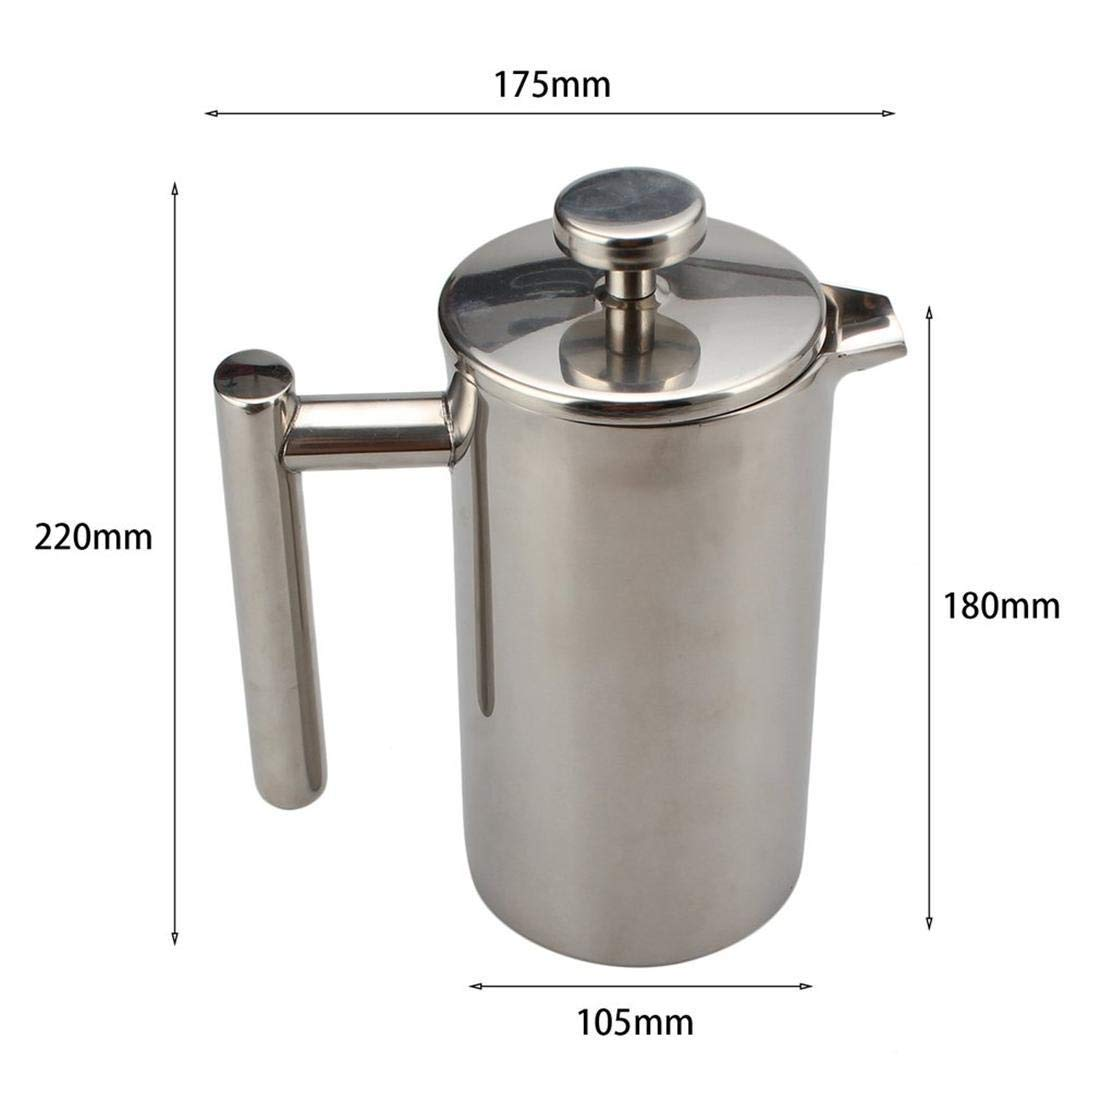 Seatour 1000ML Stainless Steel Double Wall Insulated French Press Coffee Tea Pot with Filter by Seatour (Image #2)